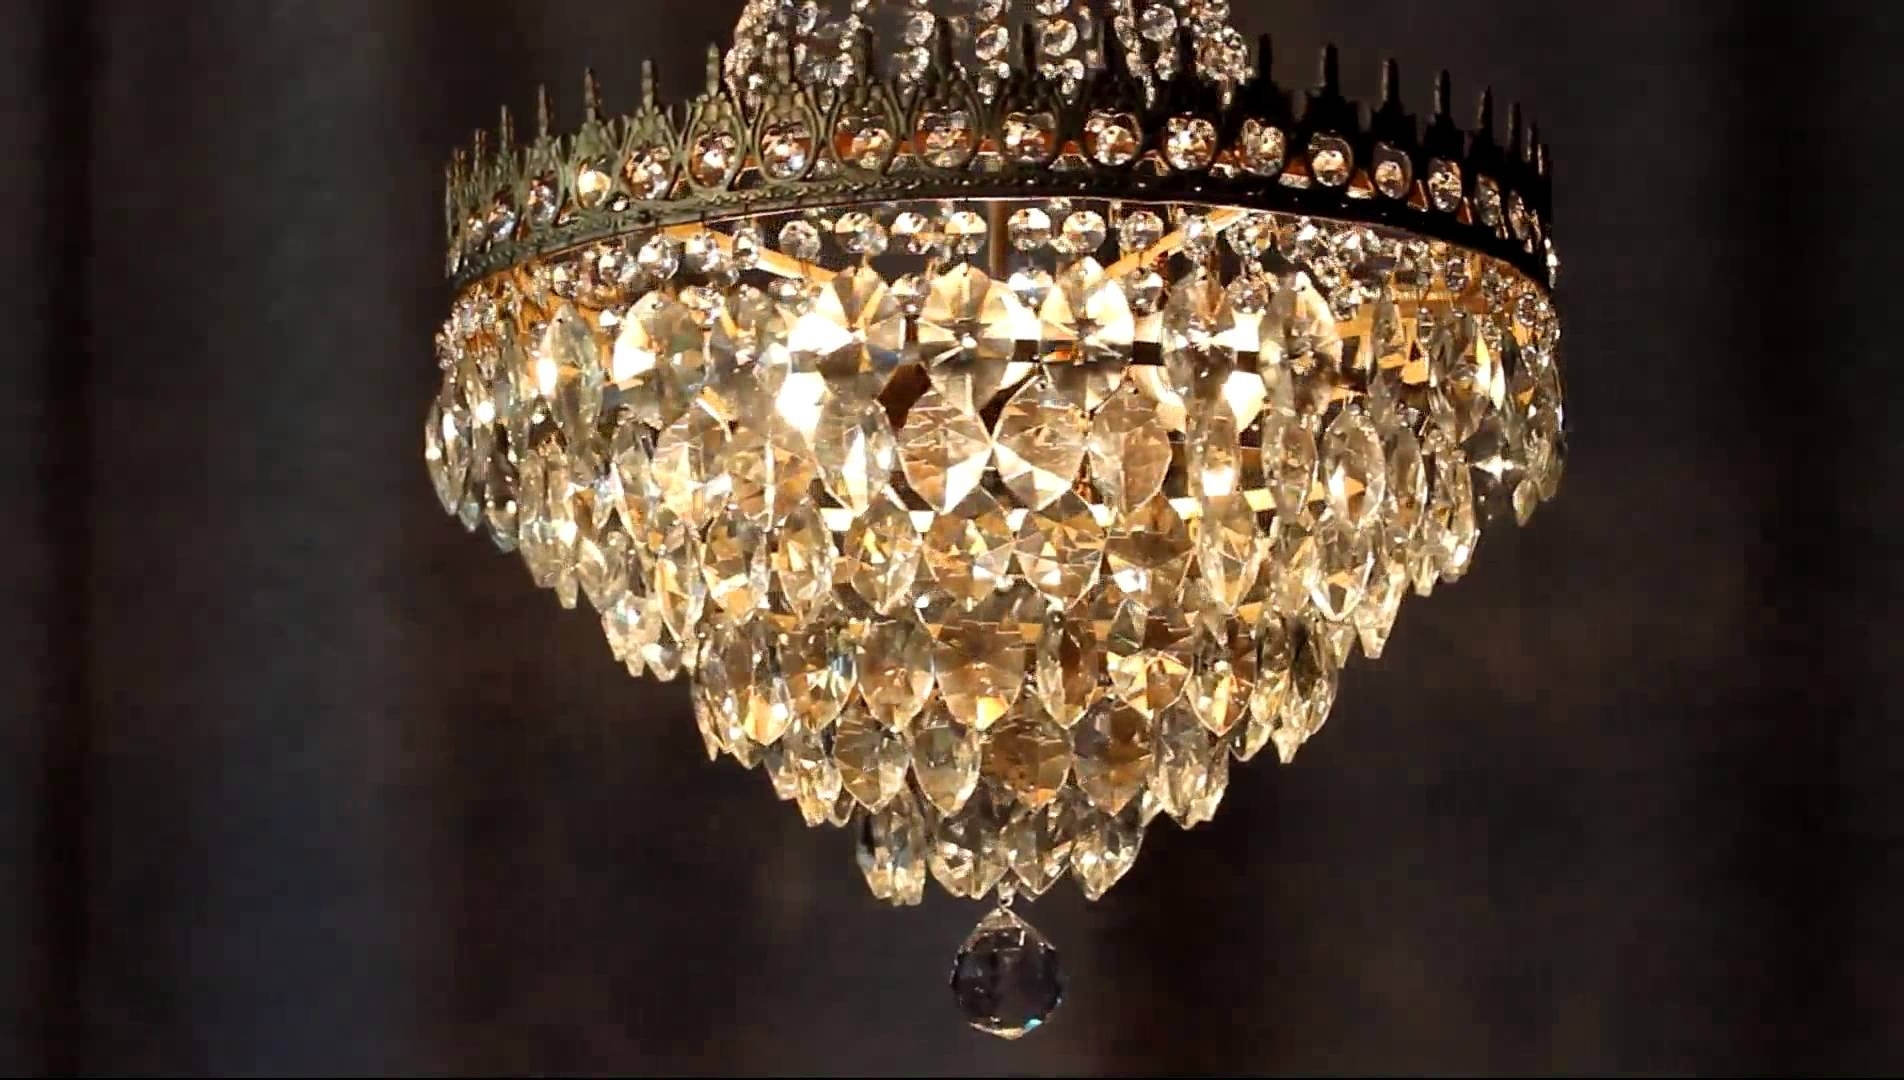 2018 Huge Antique Luster Crystal Candelabra Chandelier Lighting Brass Old Intended For Huge Crystal Chandeliers (View 3 of 20)